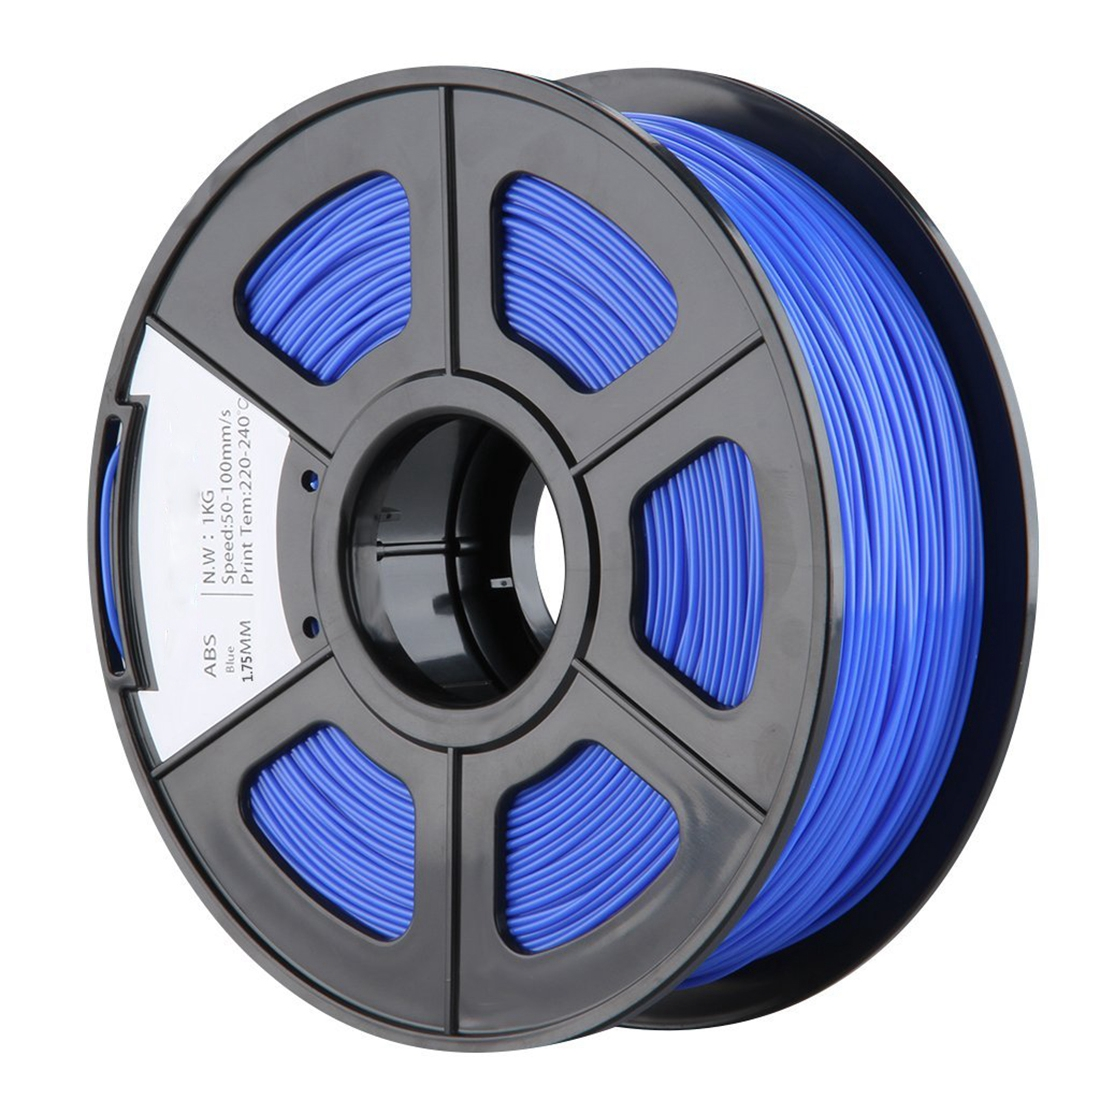 New 1.75mm ABS 3D Printer Filament - 1kg Spool (2.2 lbs) - Dimensional Accuracy +/- 0.02mm - Multi Colors Available (Blue) 1 75mm jade green abs filament high accuracy 3d printer accessories 10m